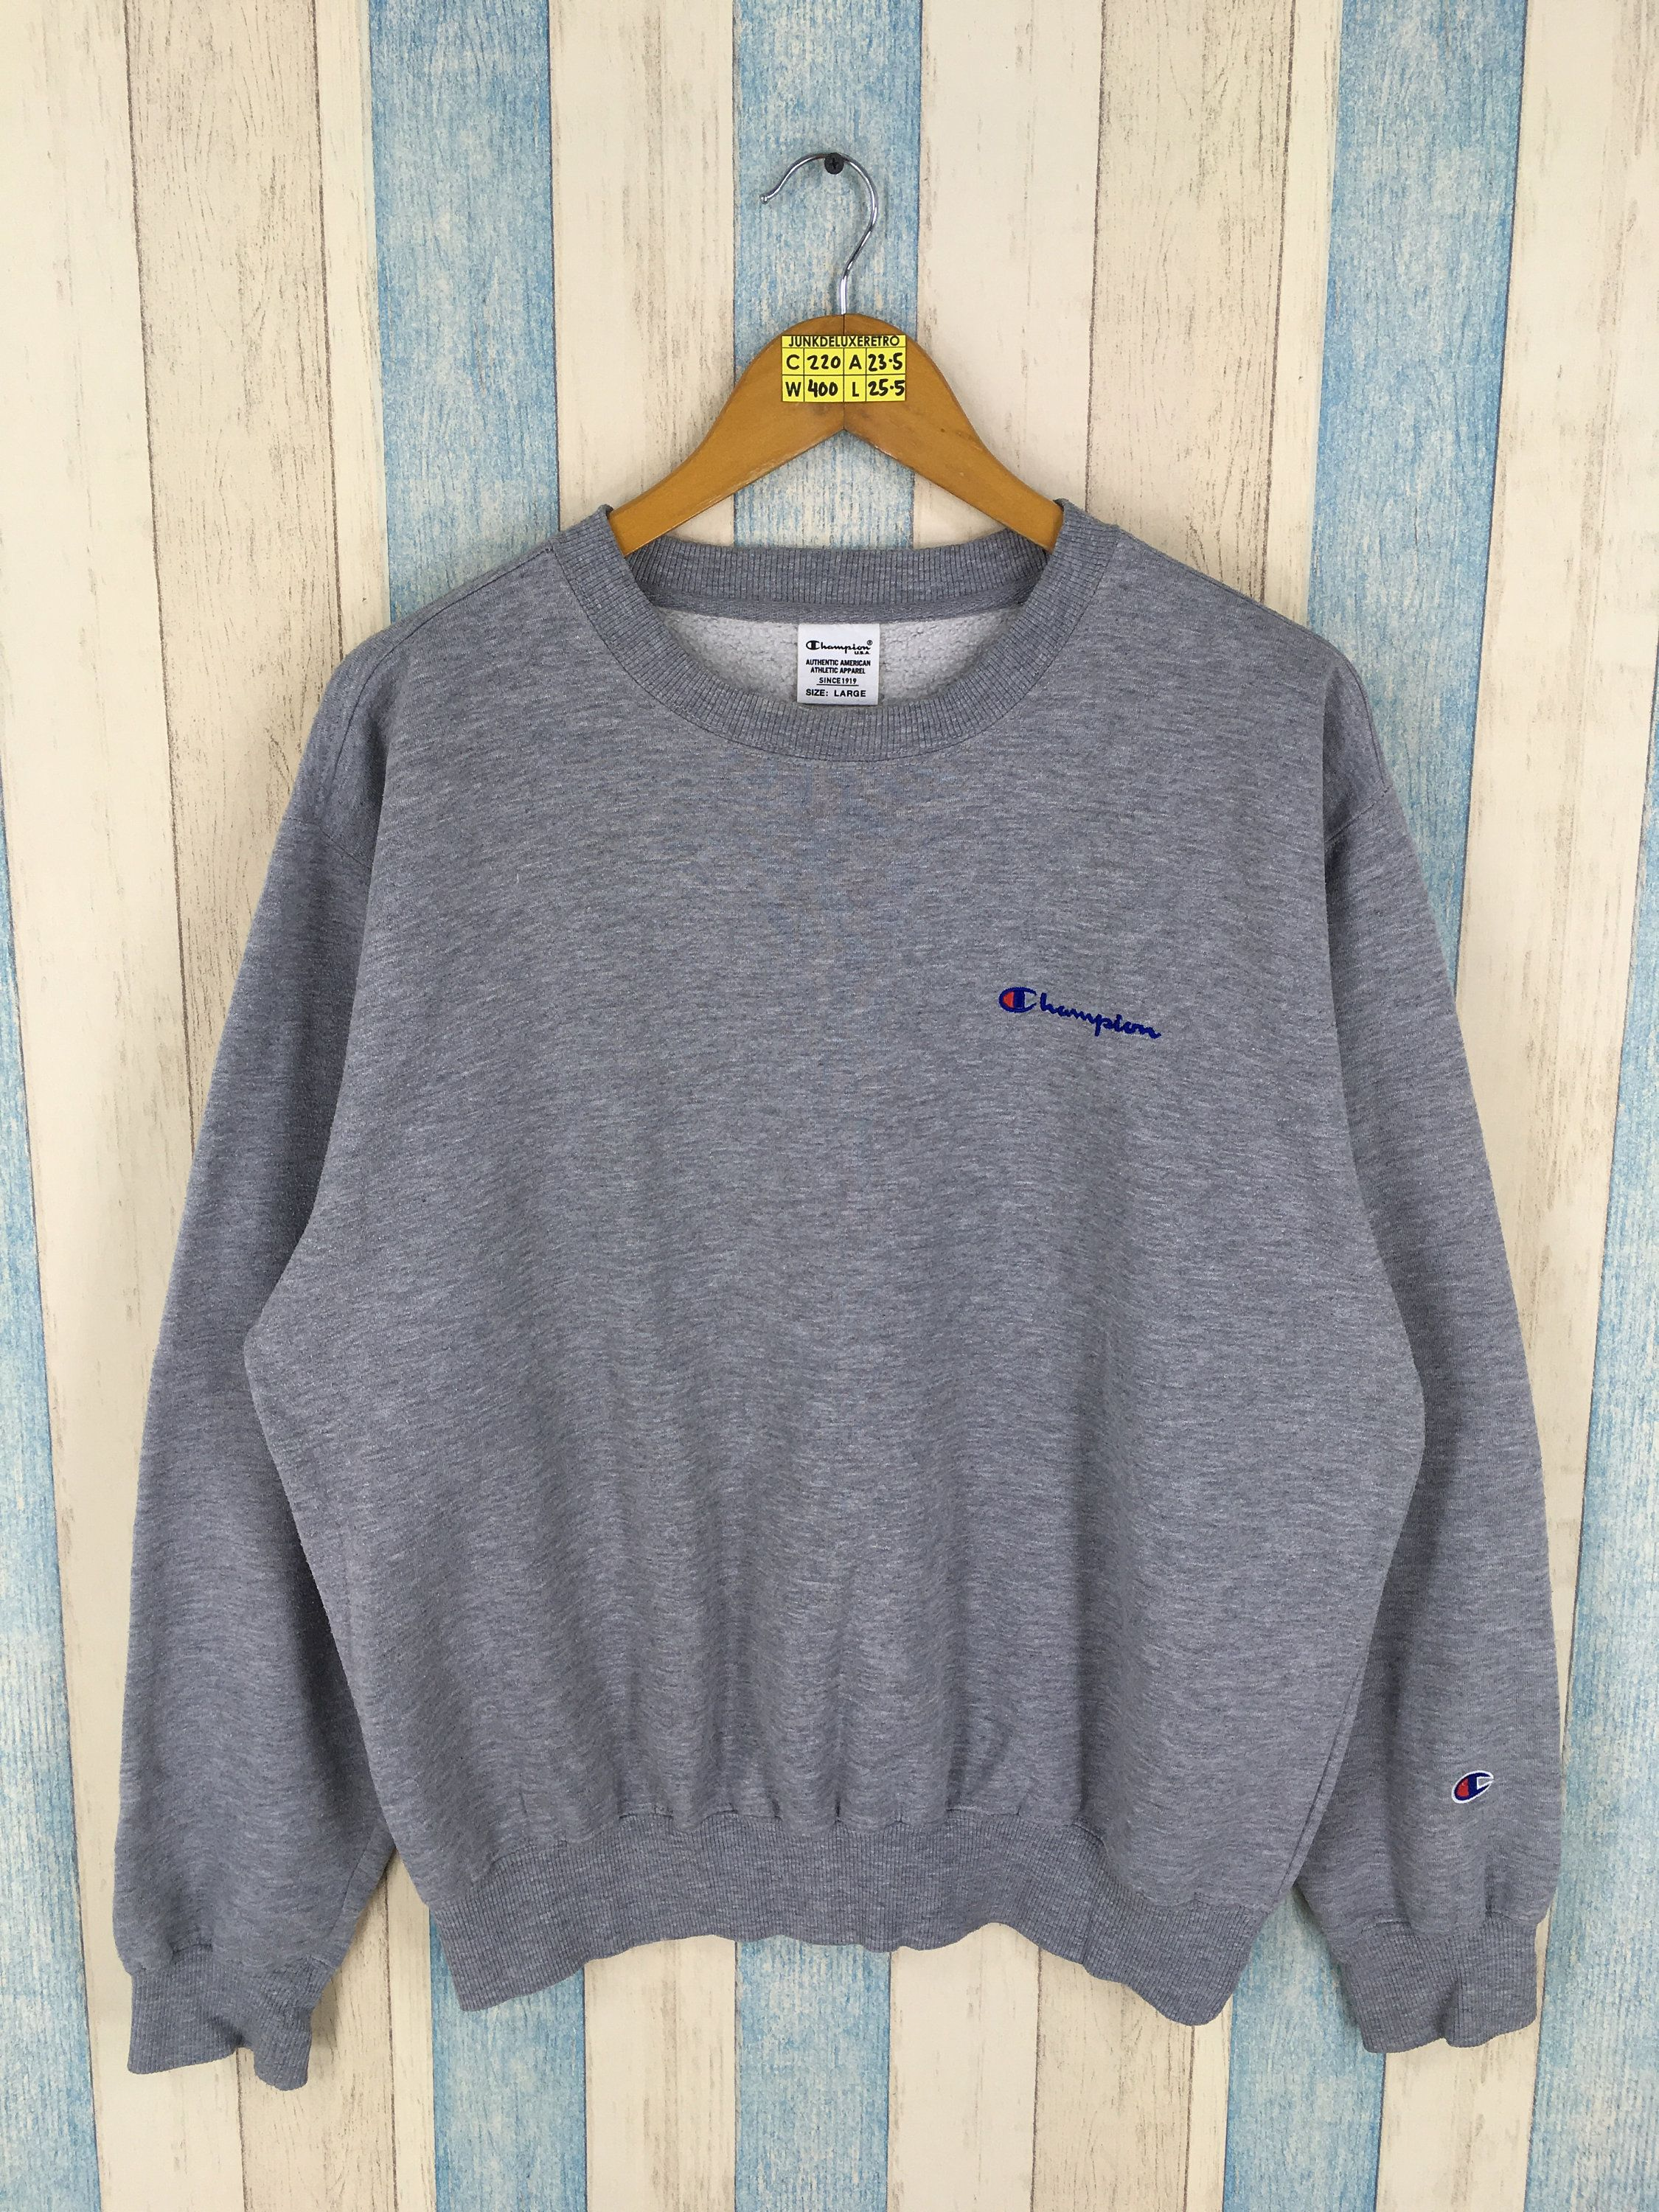 Champion Pullover Jumper Large Unisex Vintage 1990 S Champion Athletic Apparel Usa Streetwear Sports Crewneck Sw Champion Pullover Champion Sportswear Pullover [ 3000 x 2250 Pixel ]